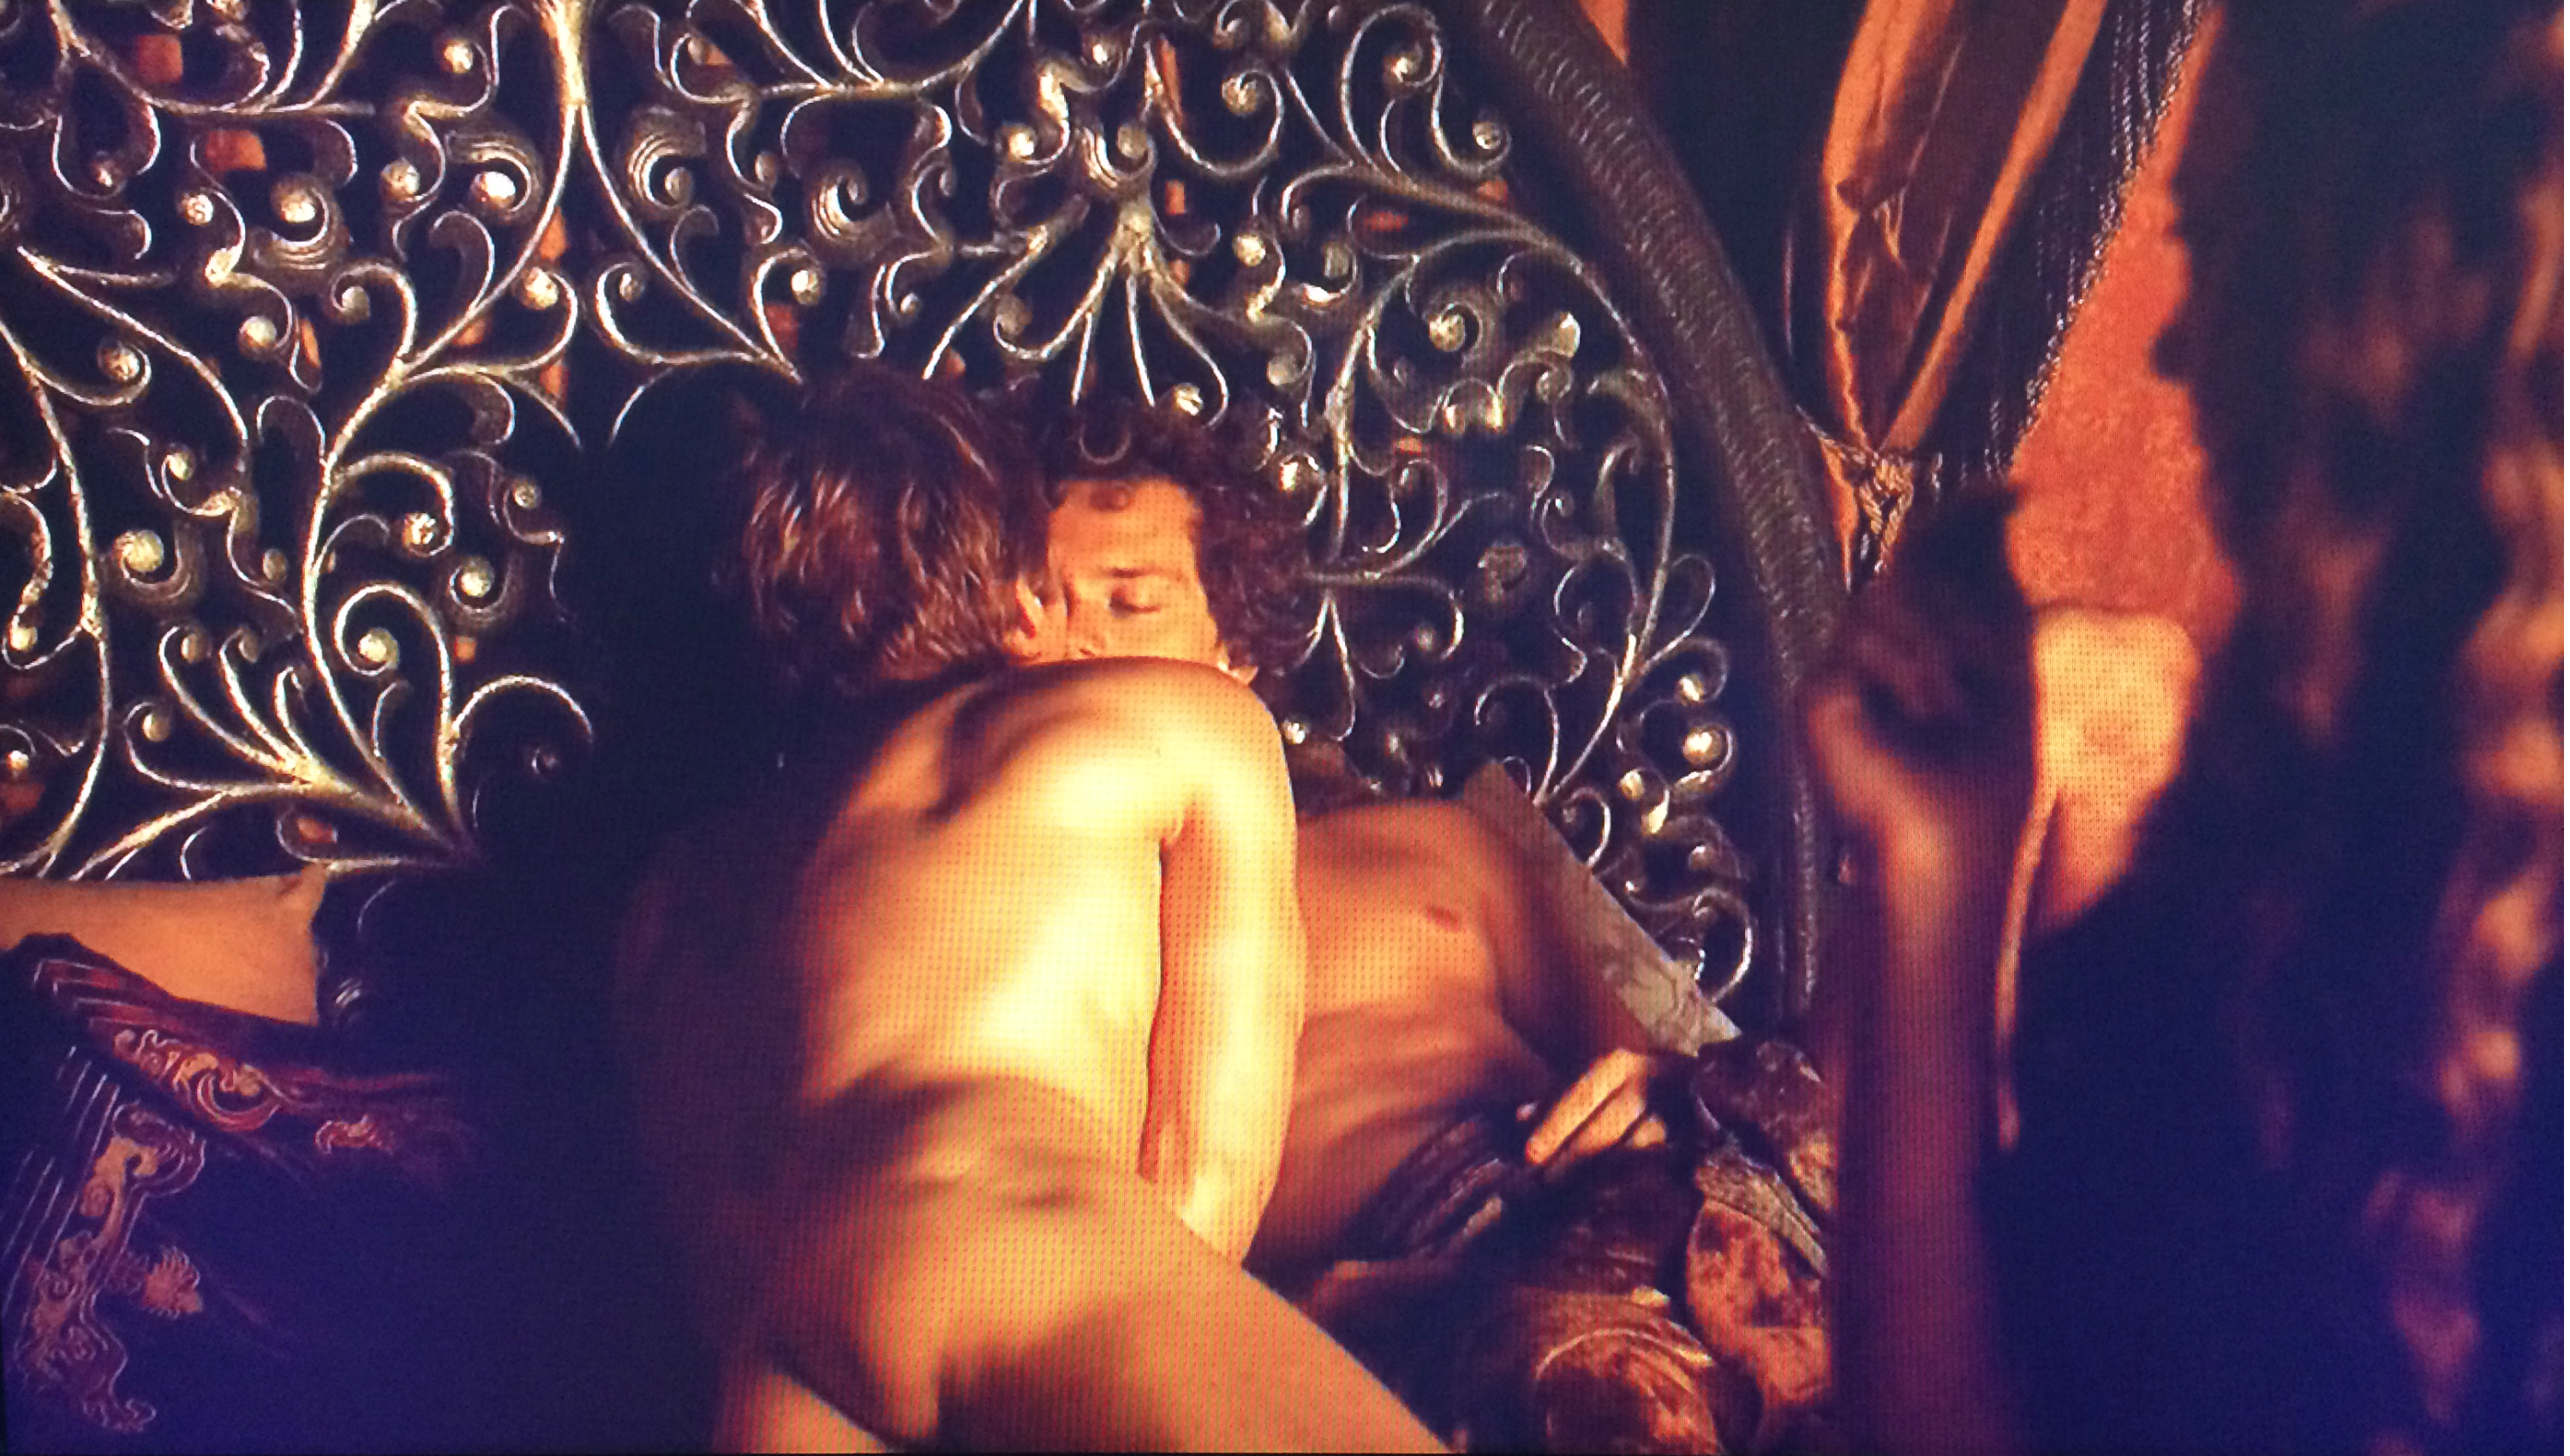 Loras Tyrell and Olyvar Game of Thrones nude